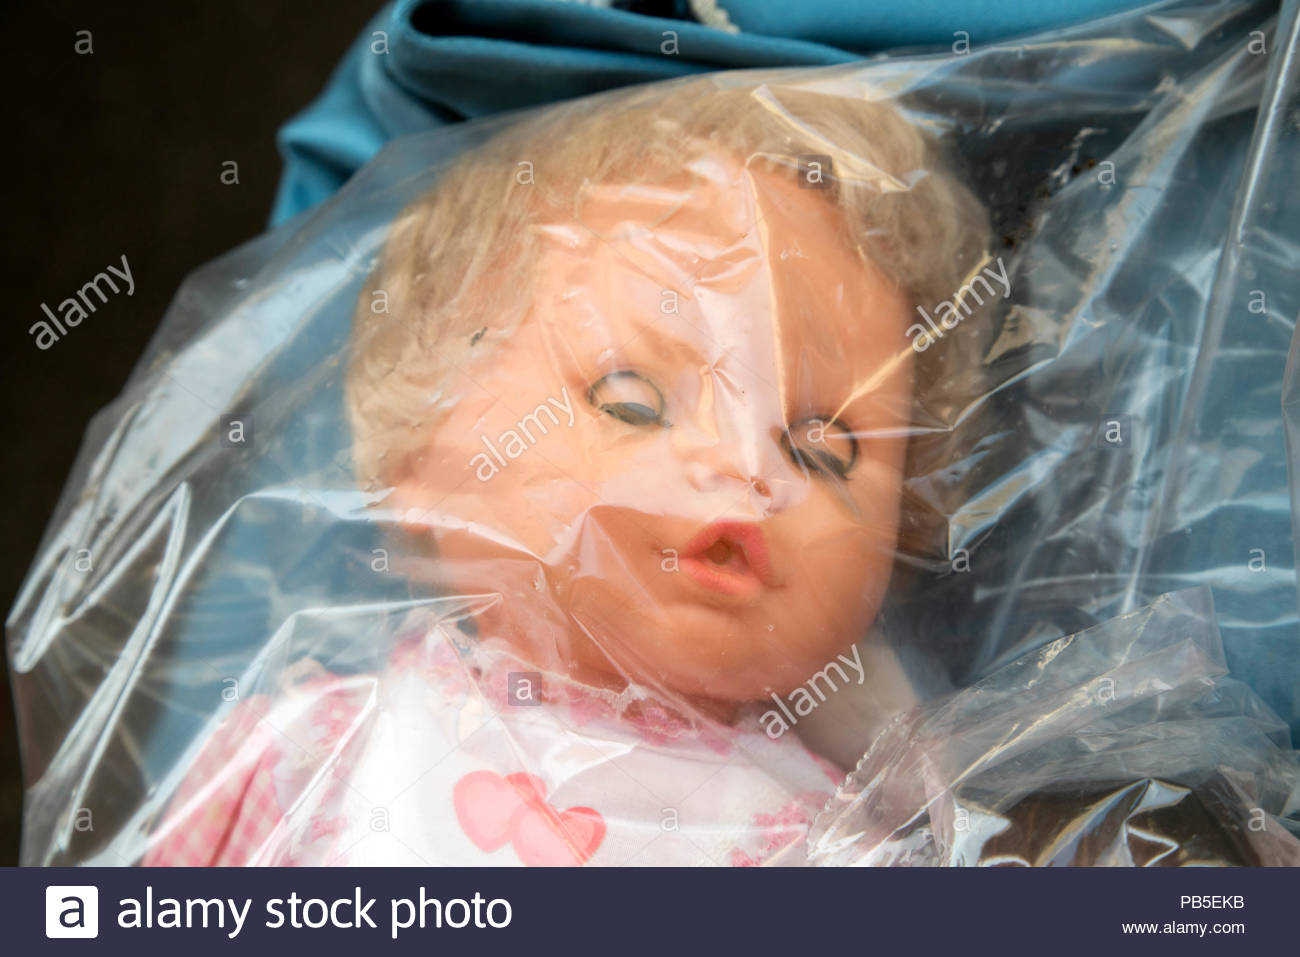 doll in clear plastic bag - Stock Image